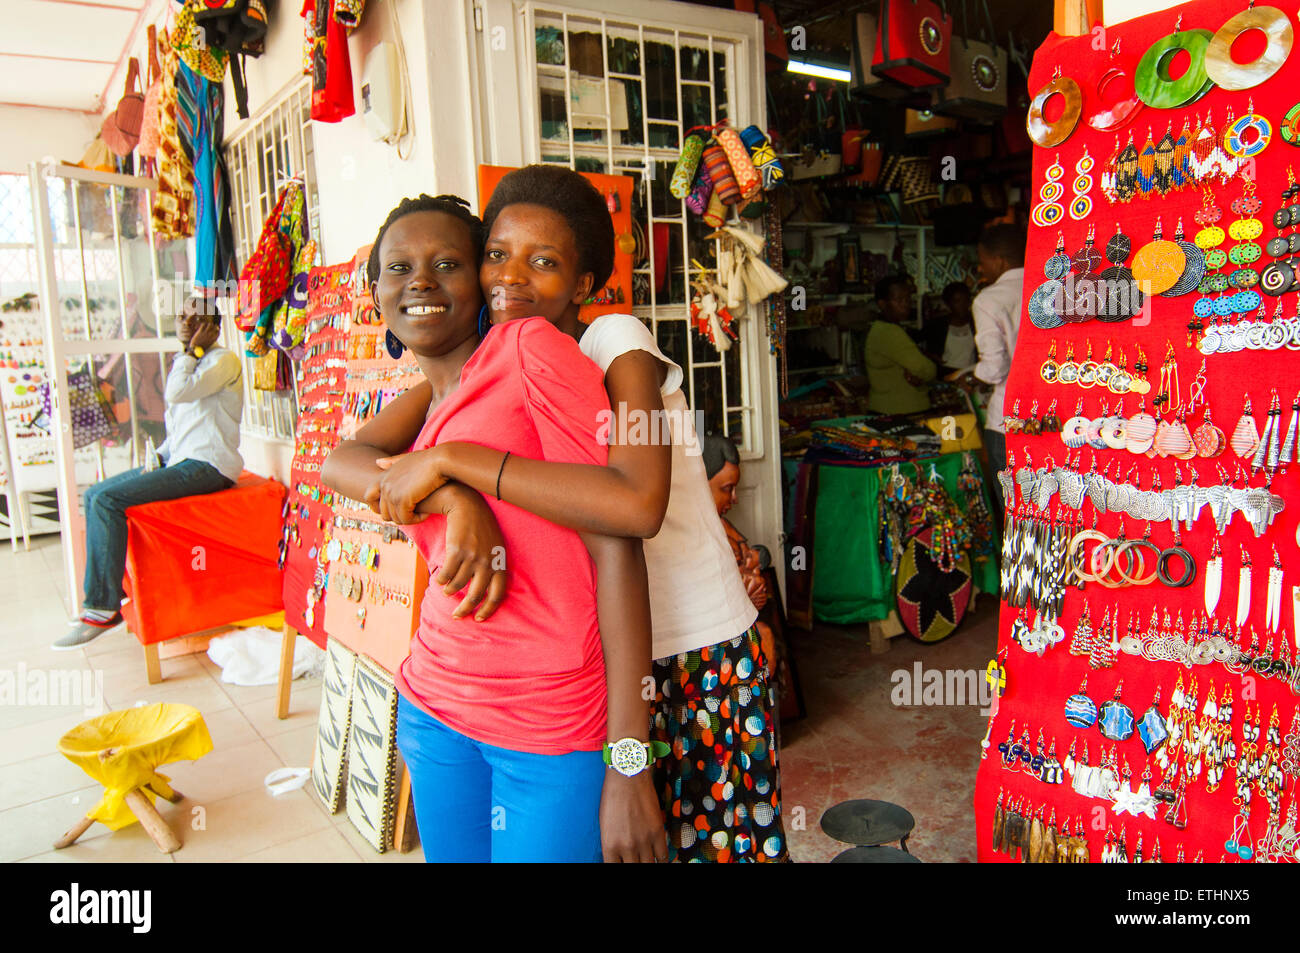 handicraft store with shop assistants, 'Central Ville', CBD, Kigali, Rwanda - Stock Image